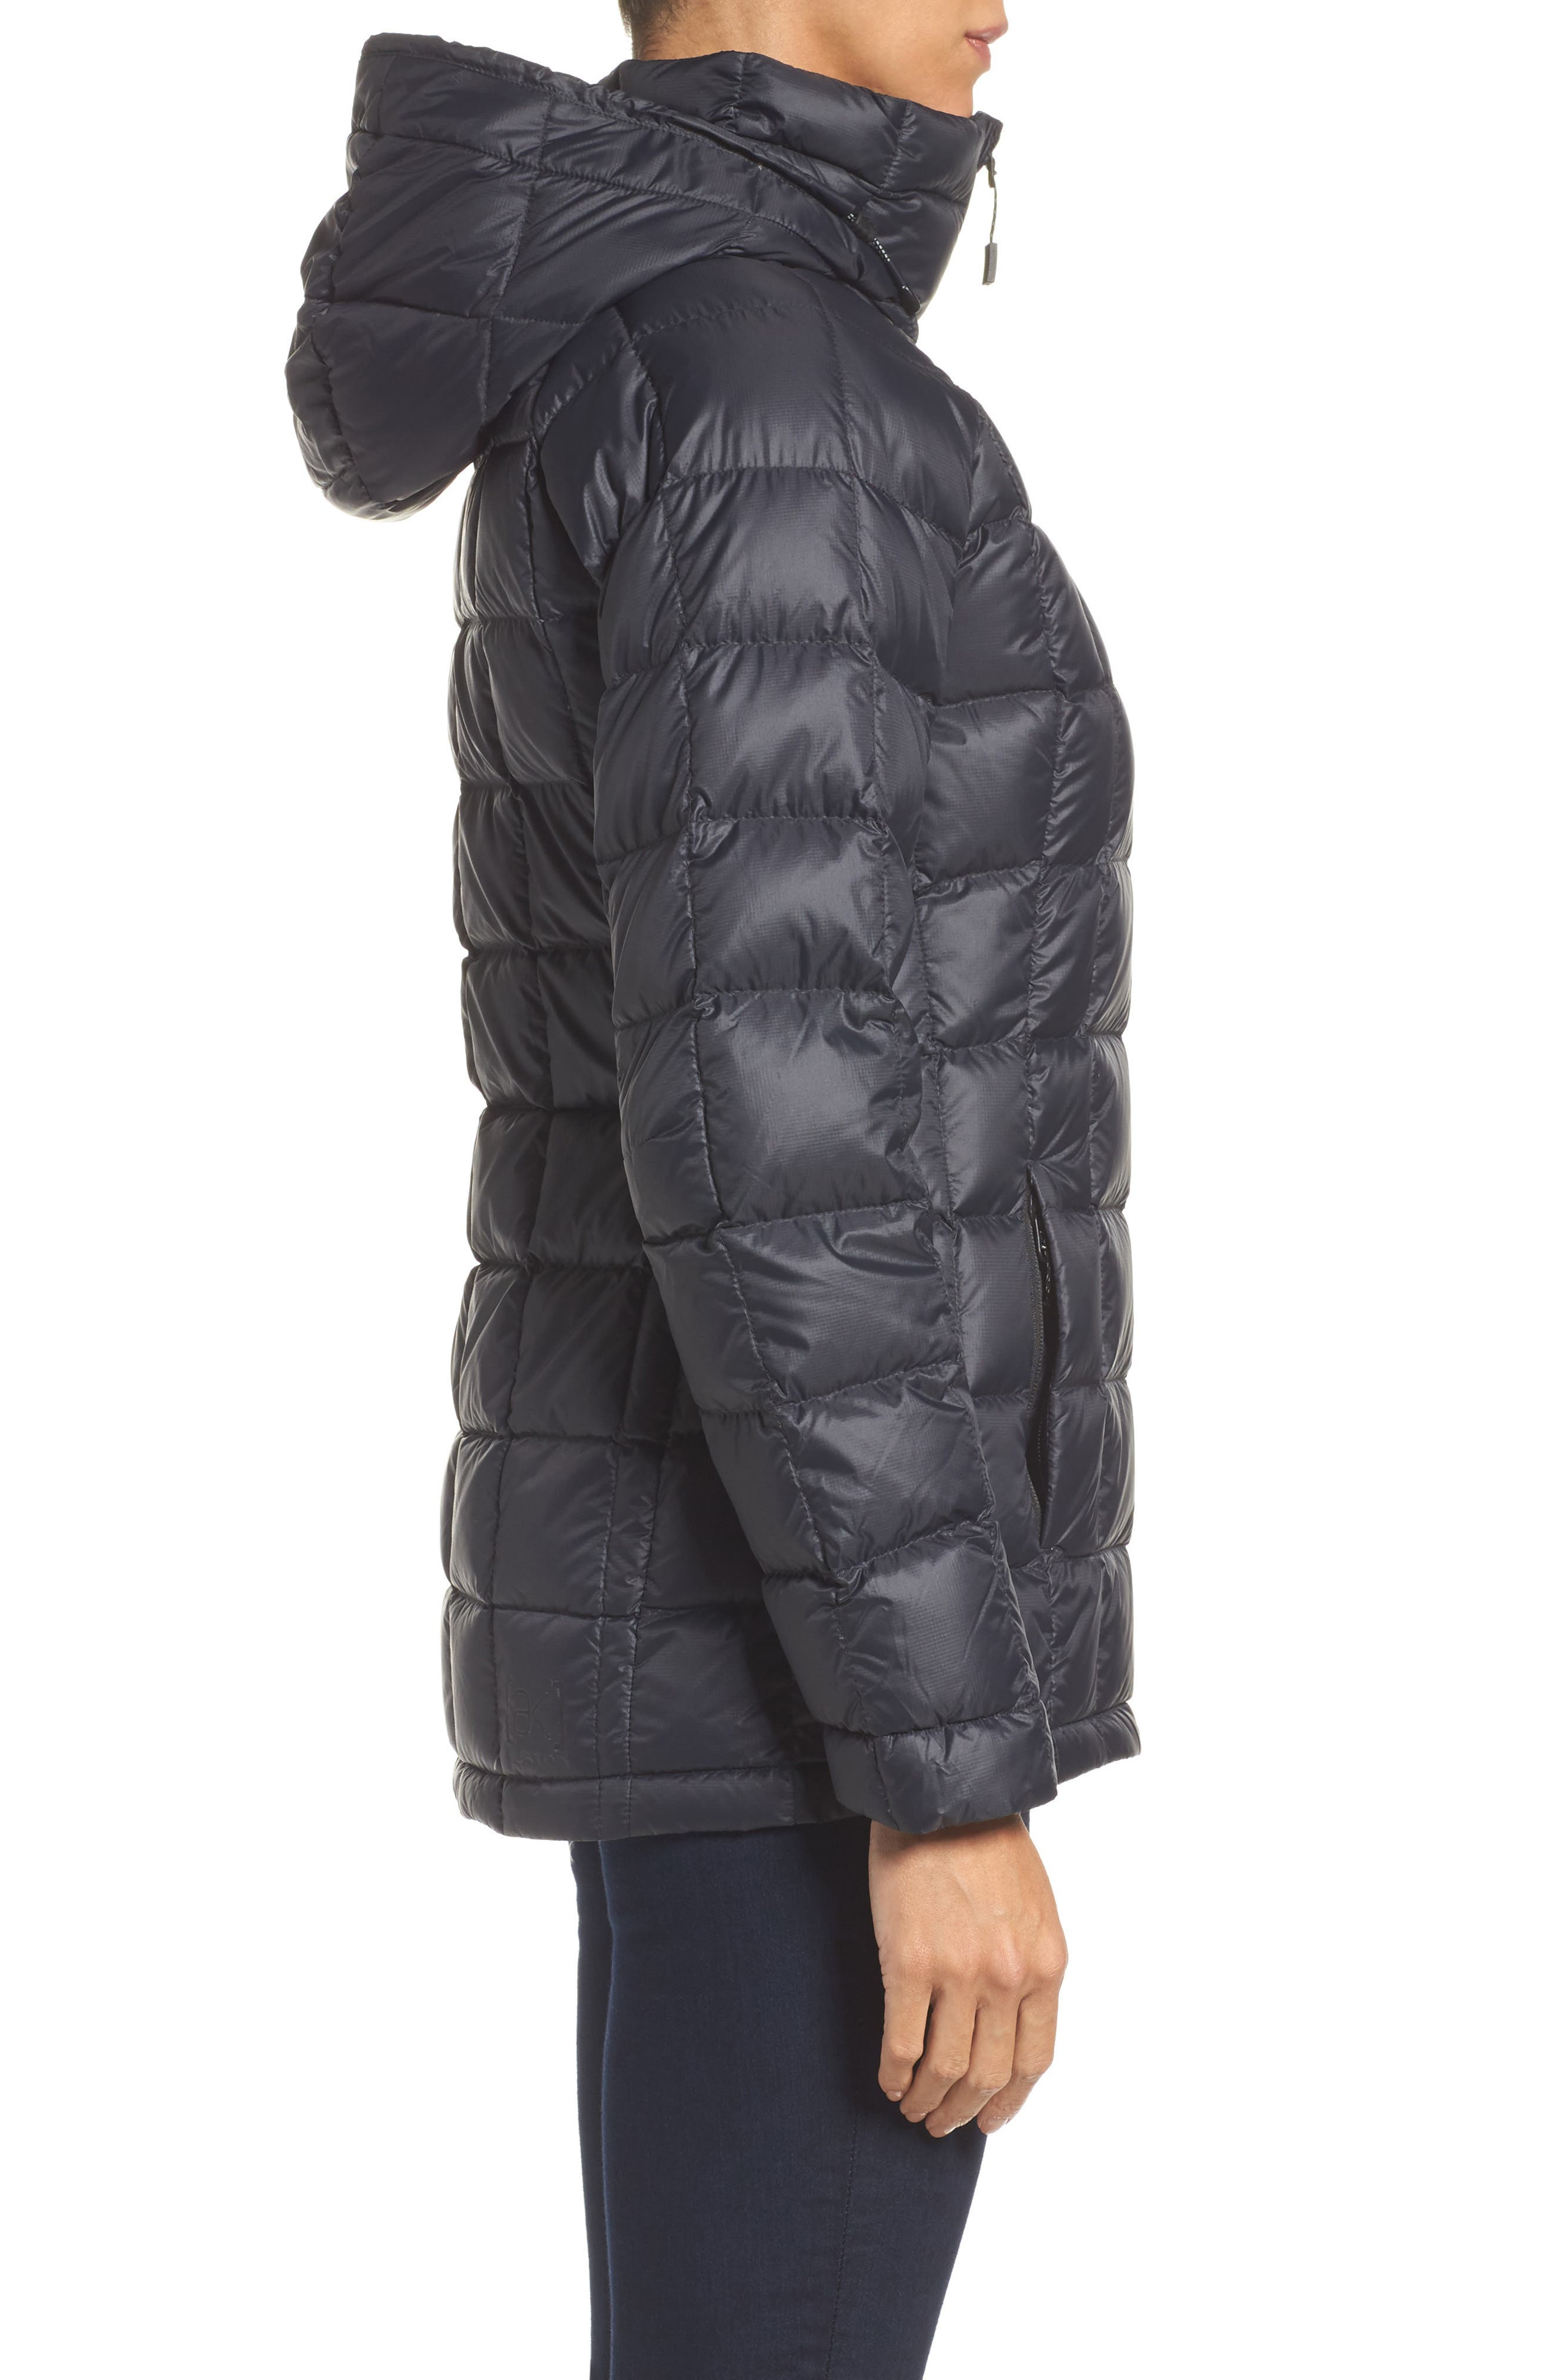 AK Baker Waterproof Quilted Down Insulator Jacket with Removable Hood,                             Alternate thumbnail 3, color,                             001